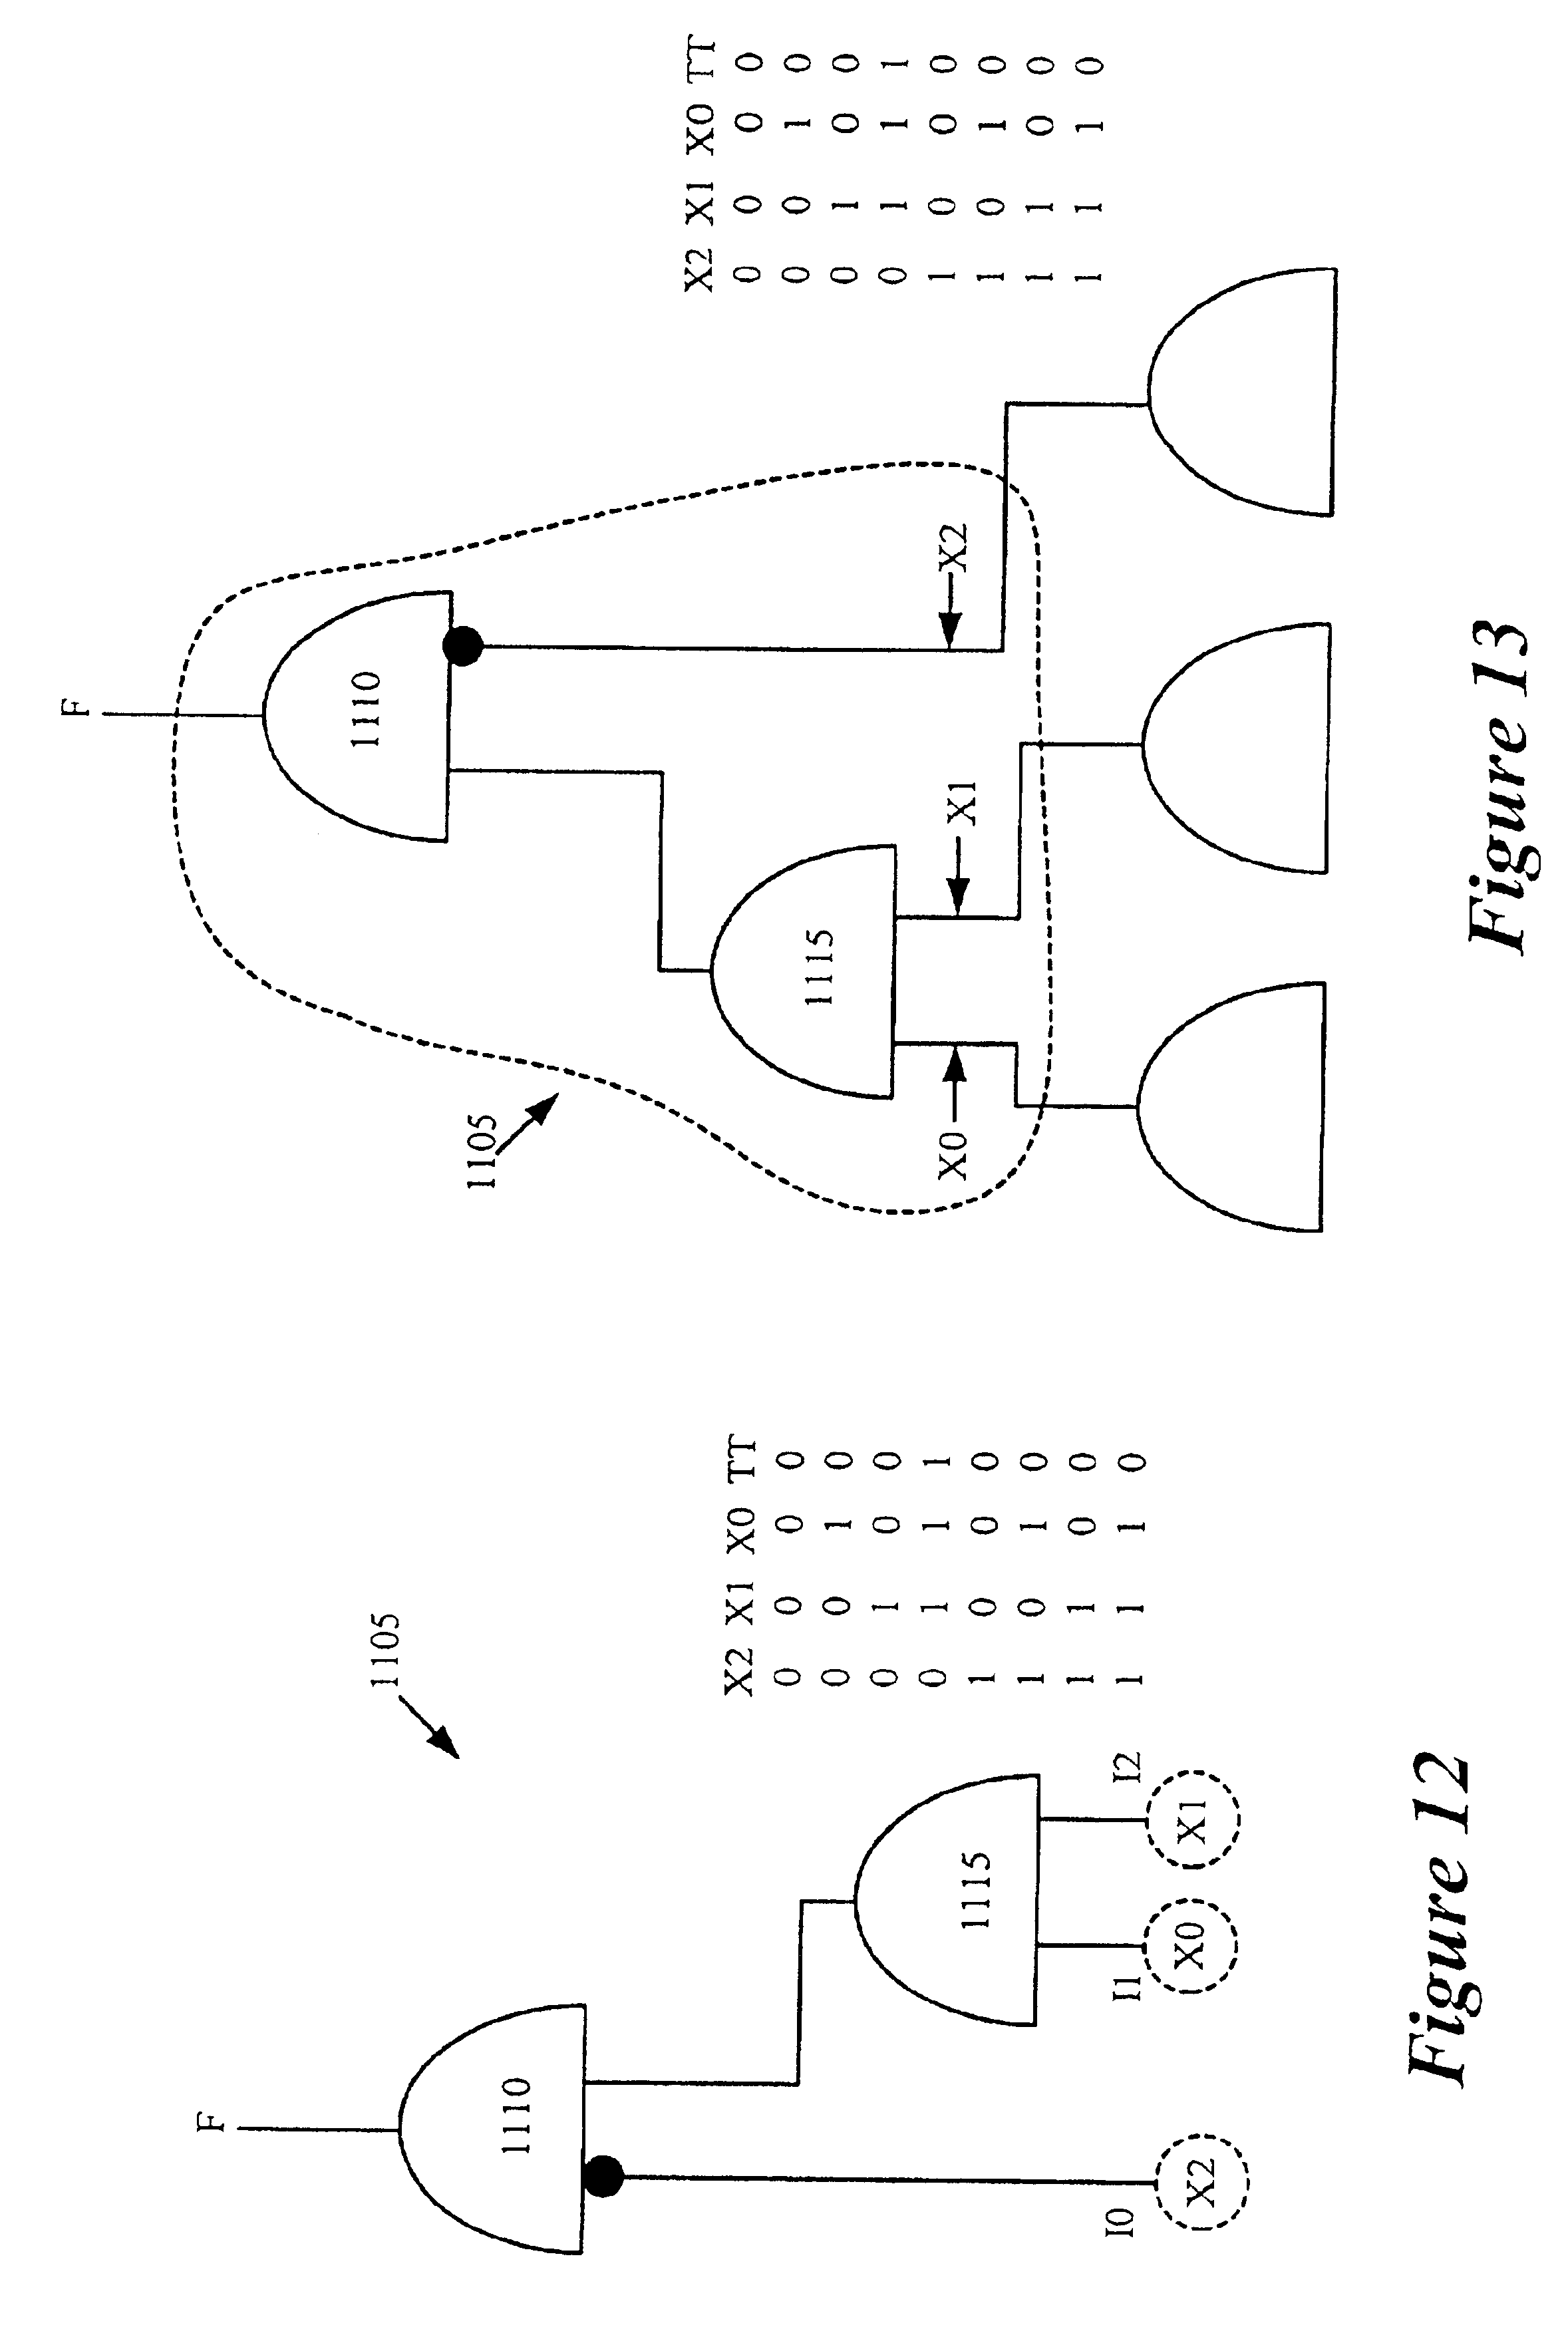 US6857117B2 - Method and apparatus for producing a circuit